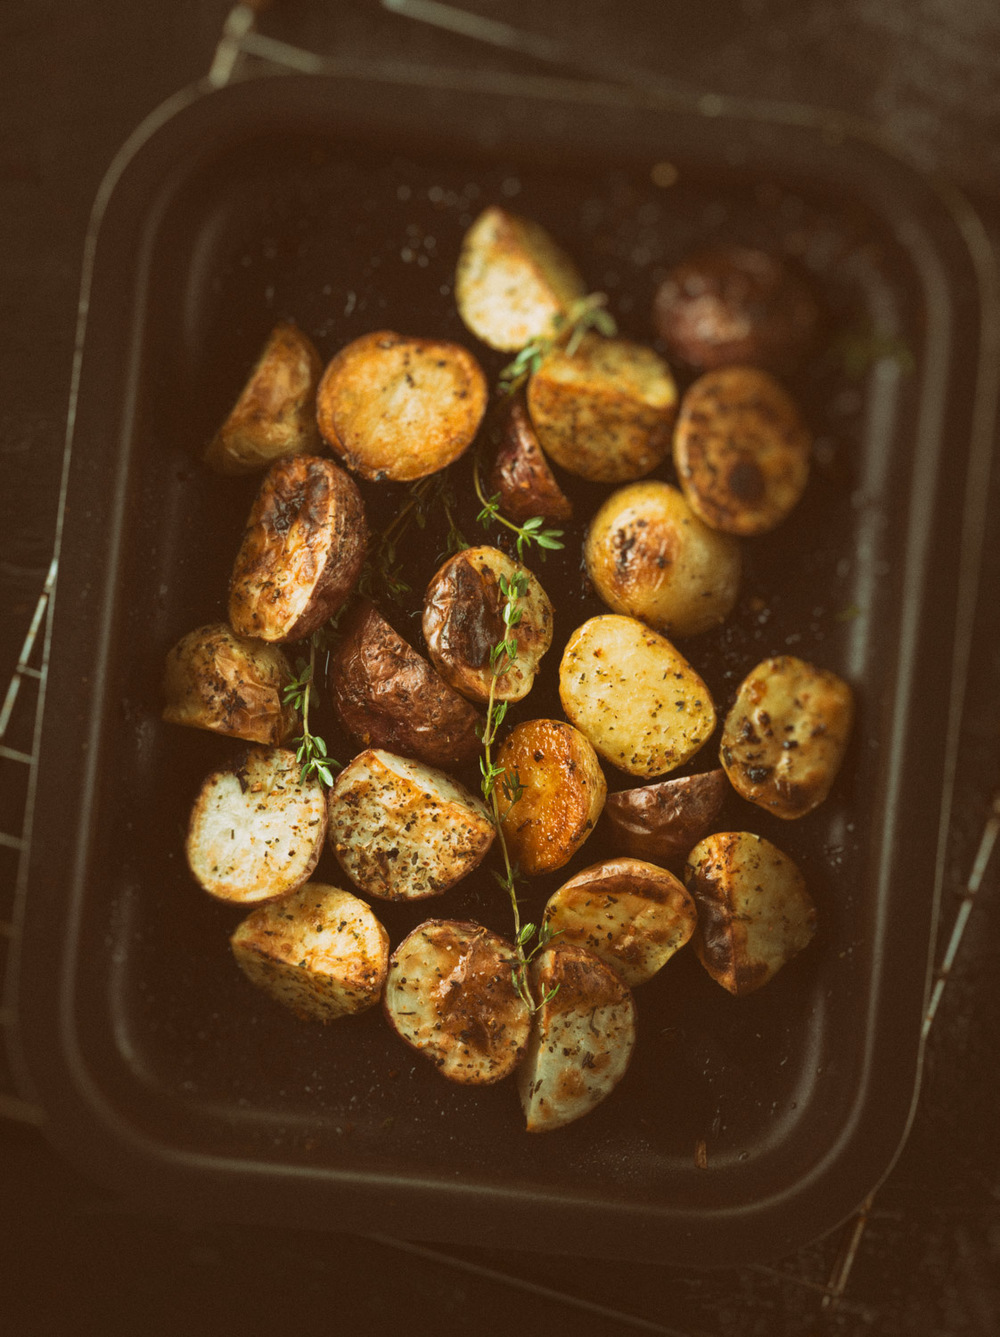 Roasted Potato-27-Edit-2.JPG